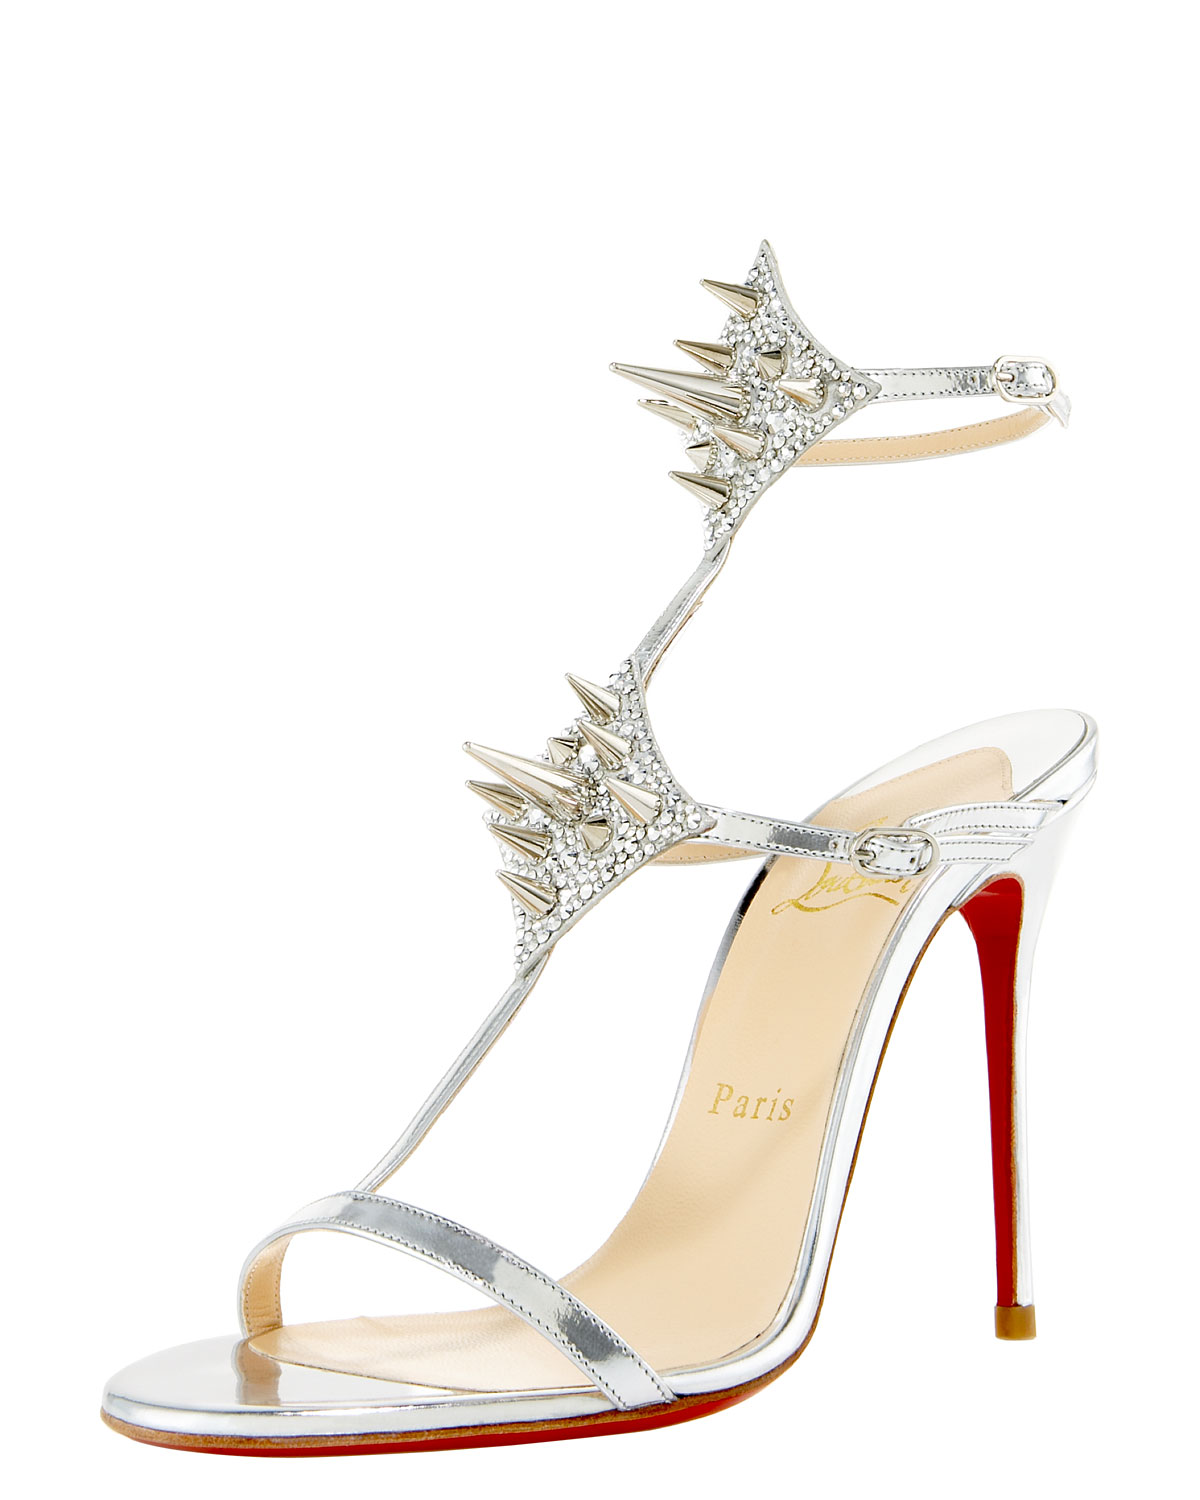 5aea4df084a Gallery. Previously sold at  Bergdorf Goodman · Women s Christian Louboutin  ...